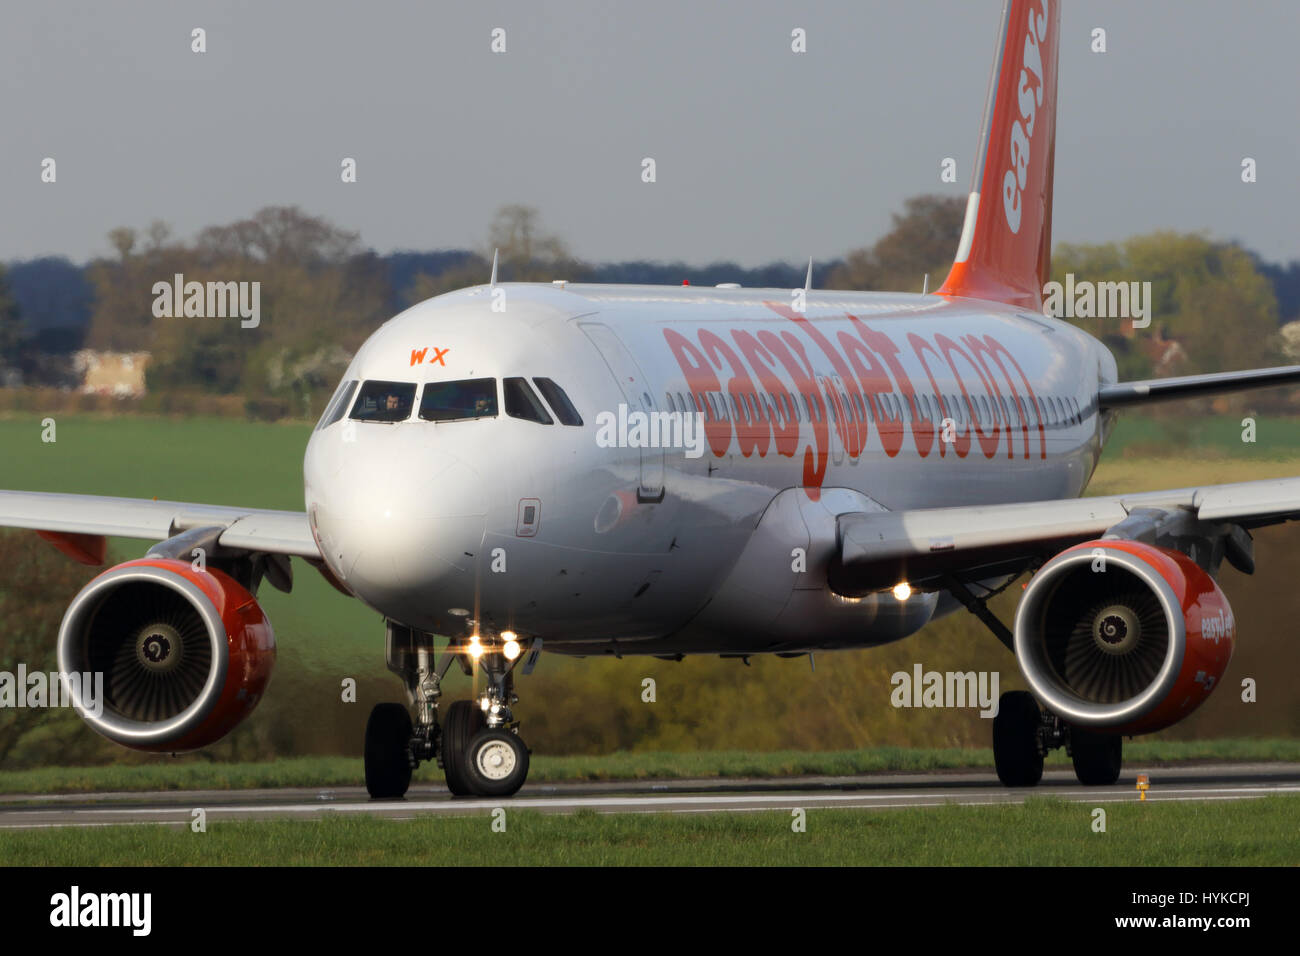 G-EZWX easyJet Airbus A320-200 cn-6192 turning onto the runway at Luton ready for departure - Stock Image